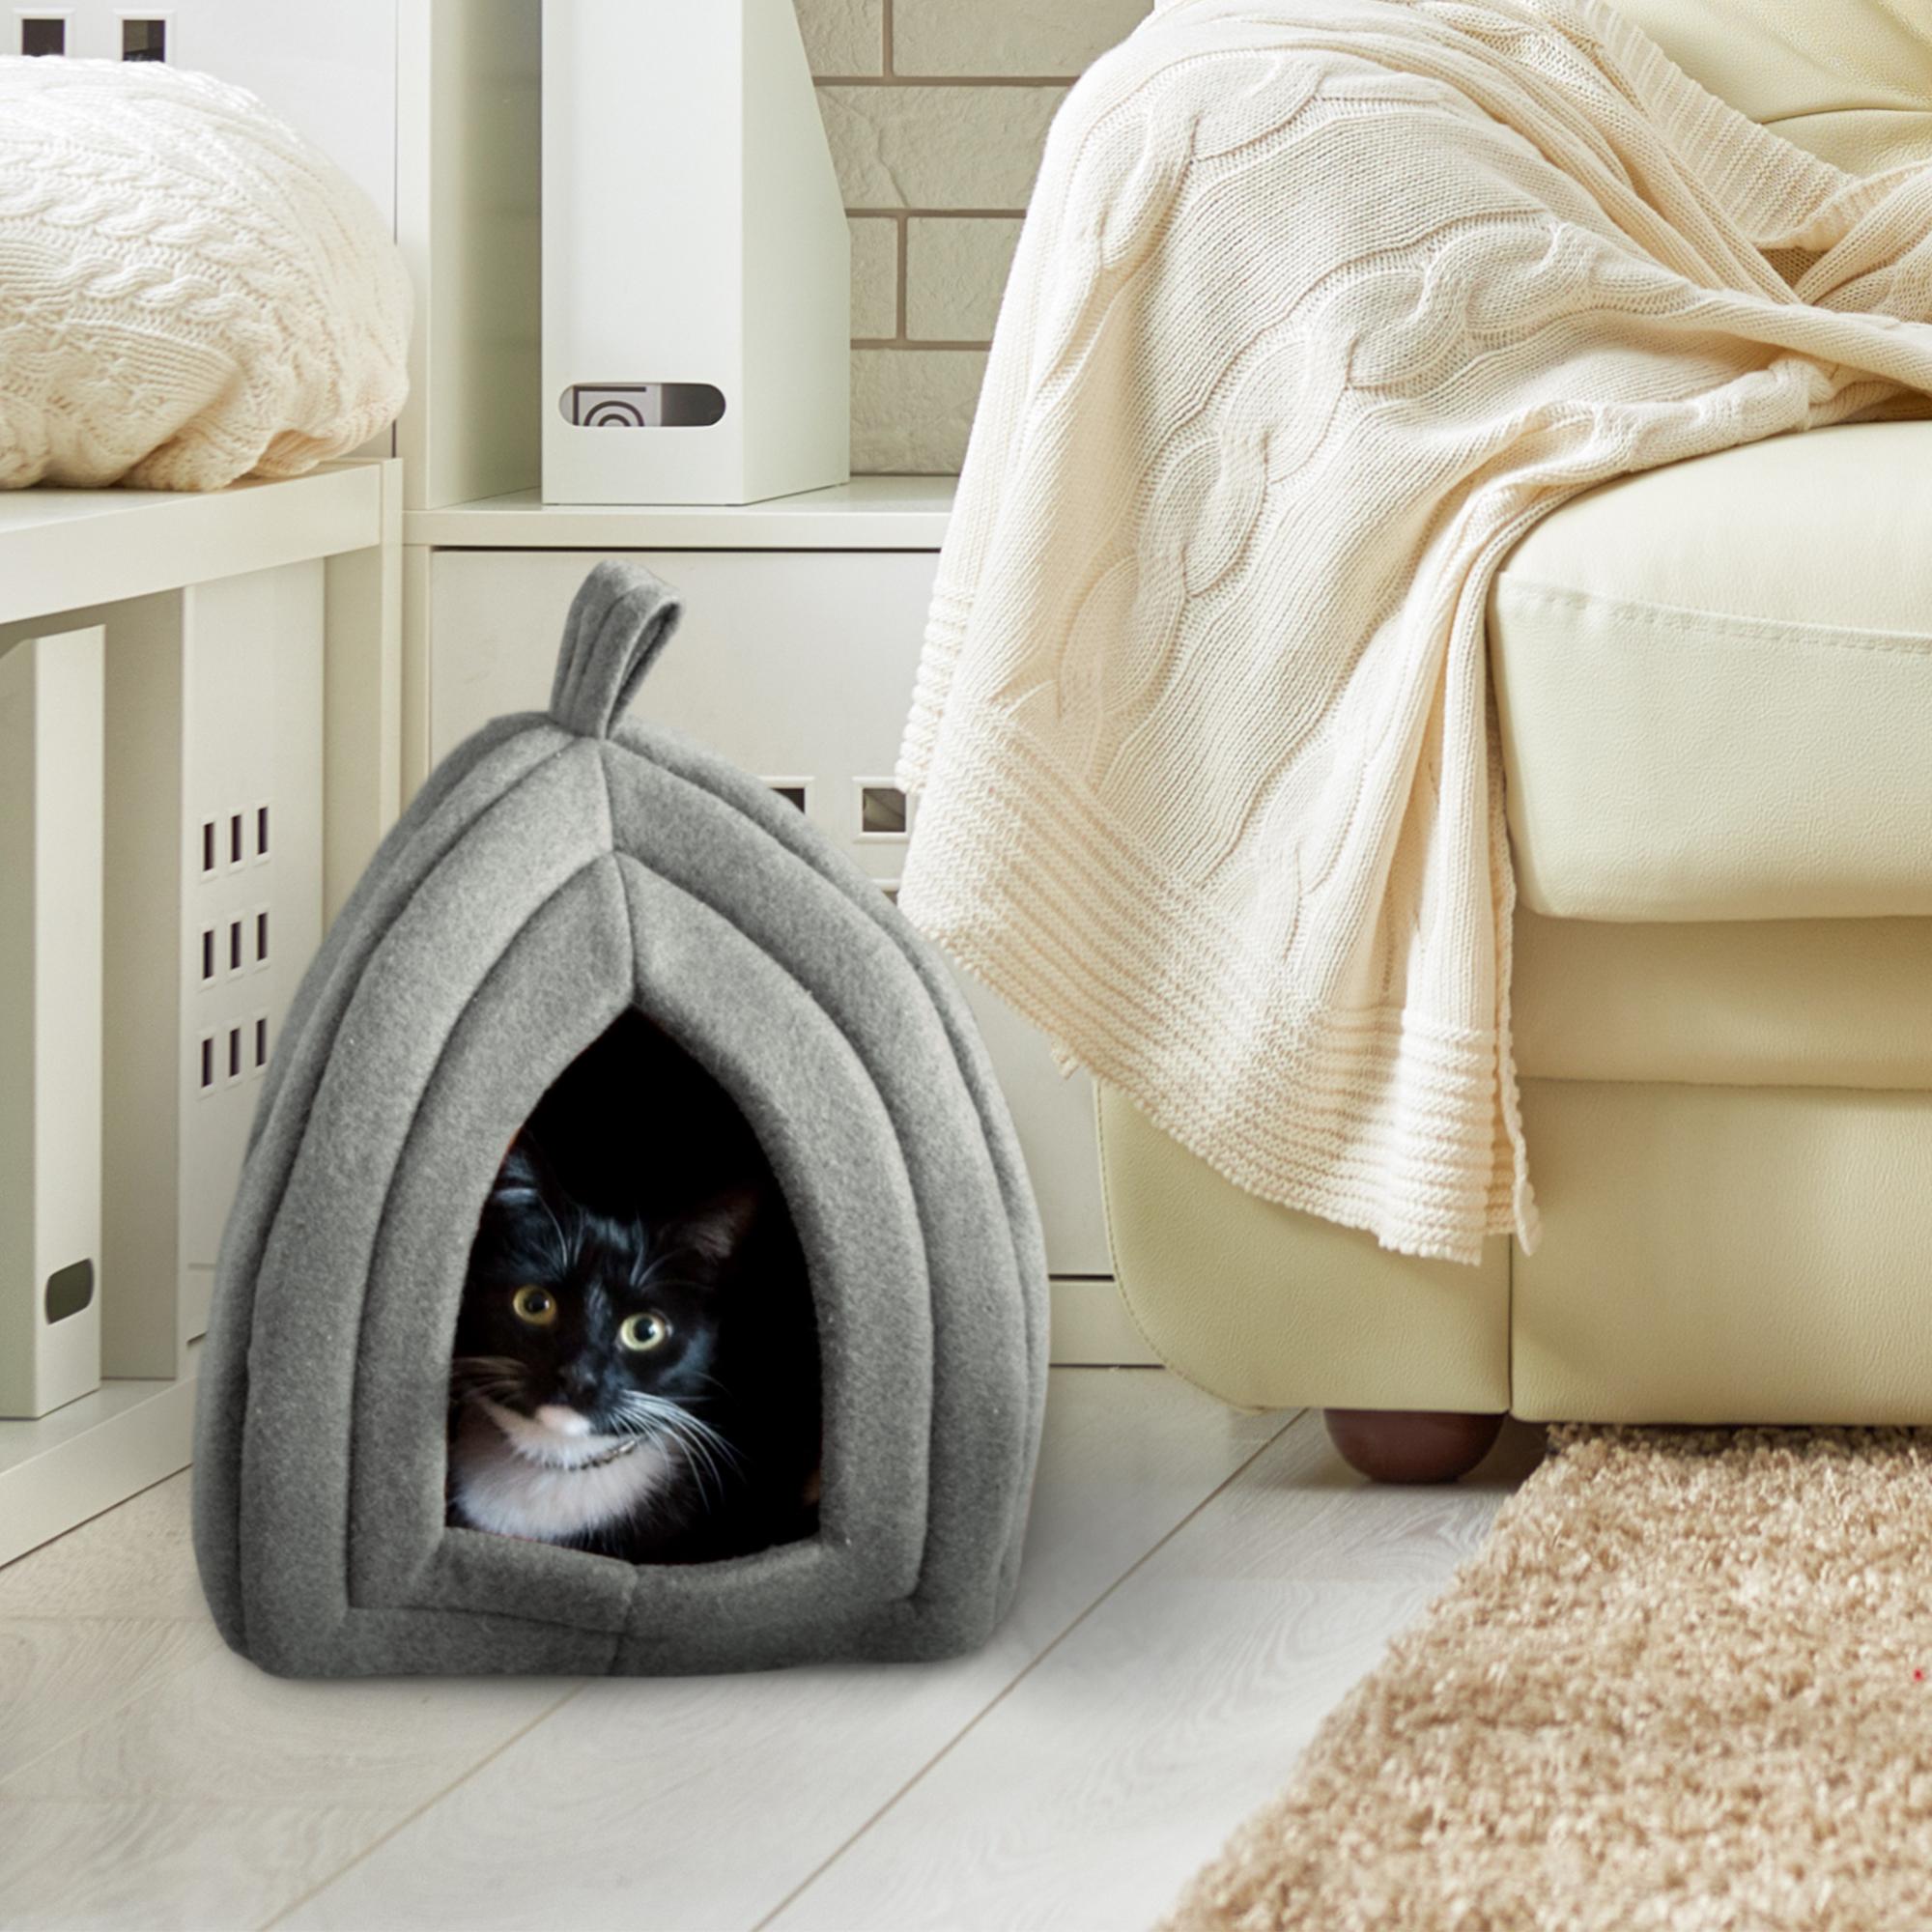 Cat Pet Bed Igloo- Soft Indoor Enclosed Covered Tent/House for Cats & Cat Pet Bed Igloo- Soft Indoor Enclosed Covered Tent/House for ...